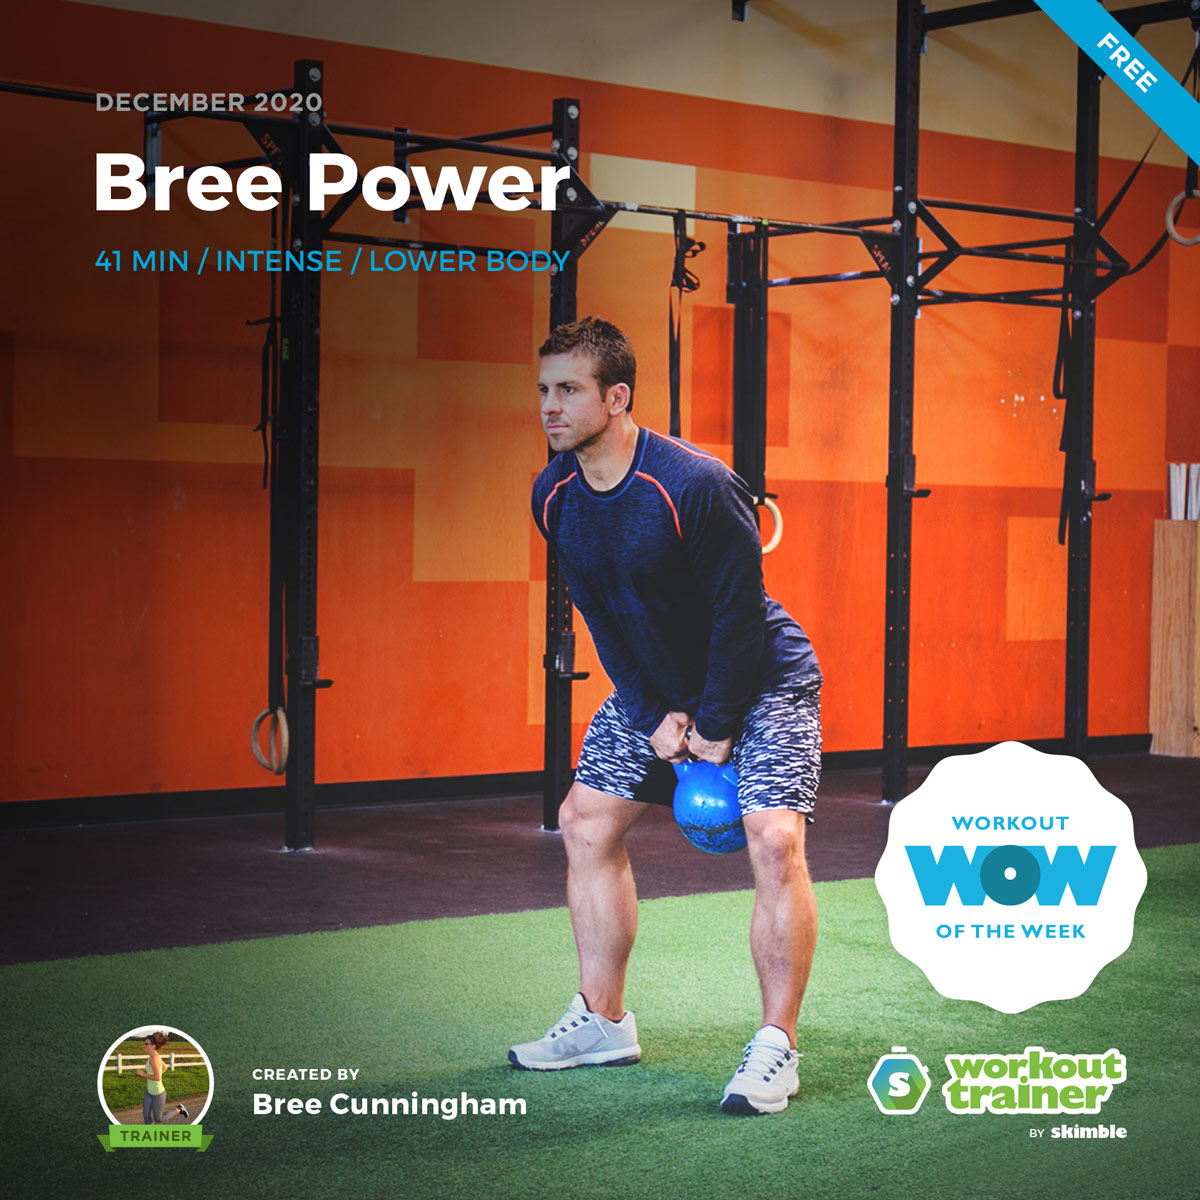 Male Personal Trainer performing good form for Kettlebell Swings